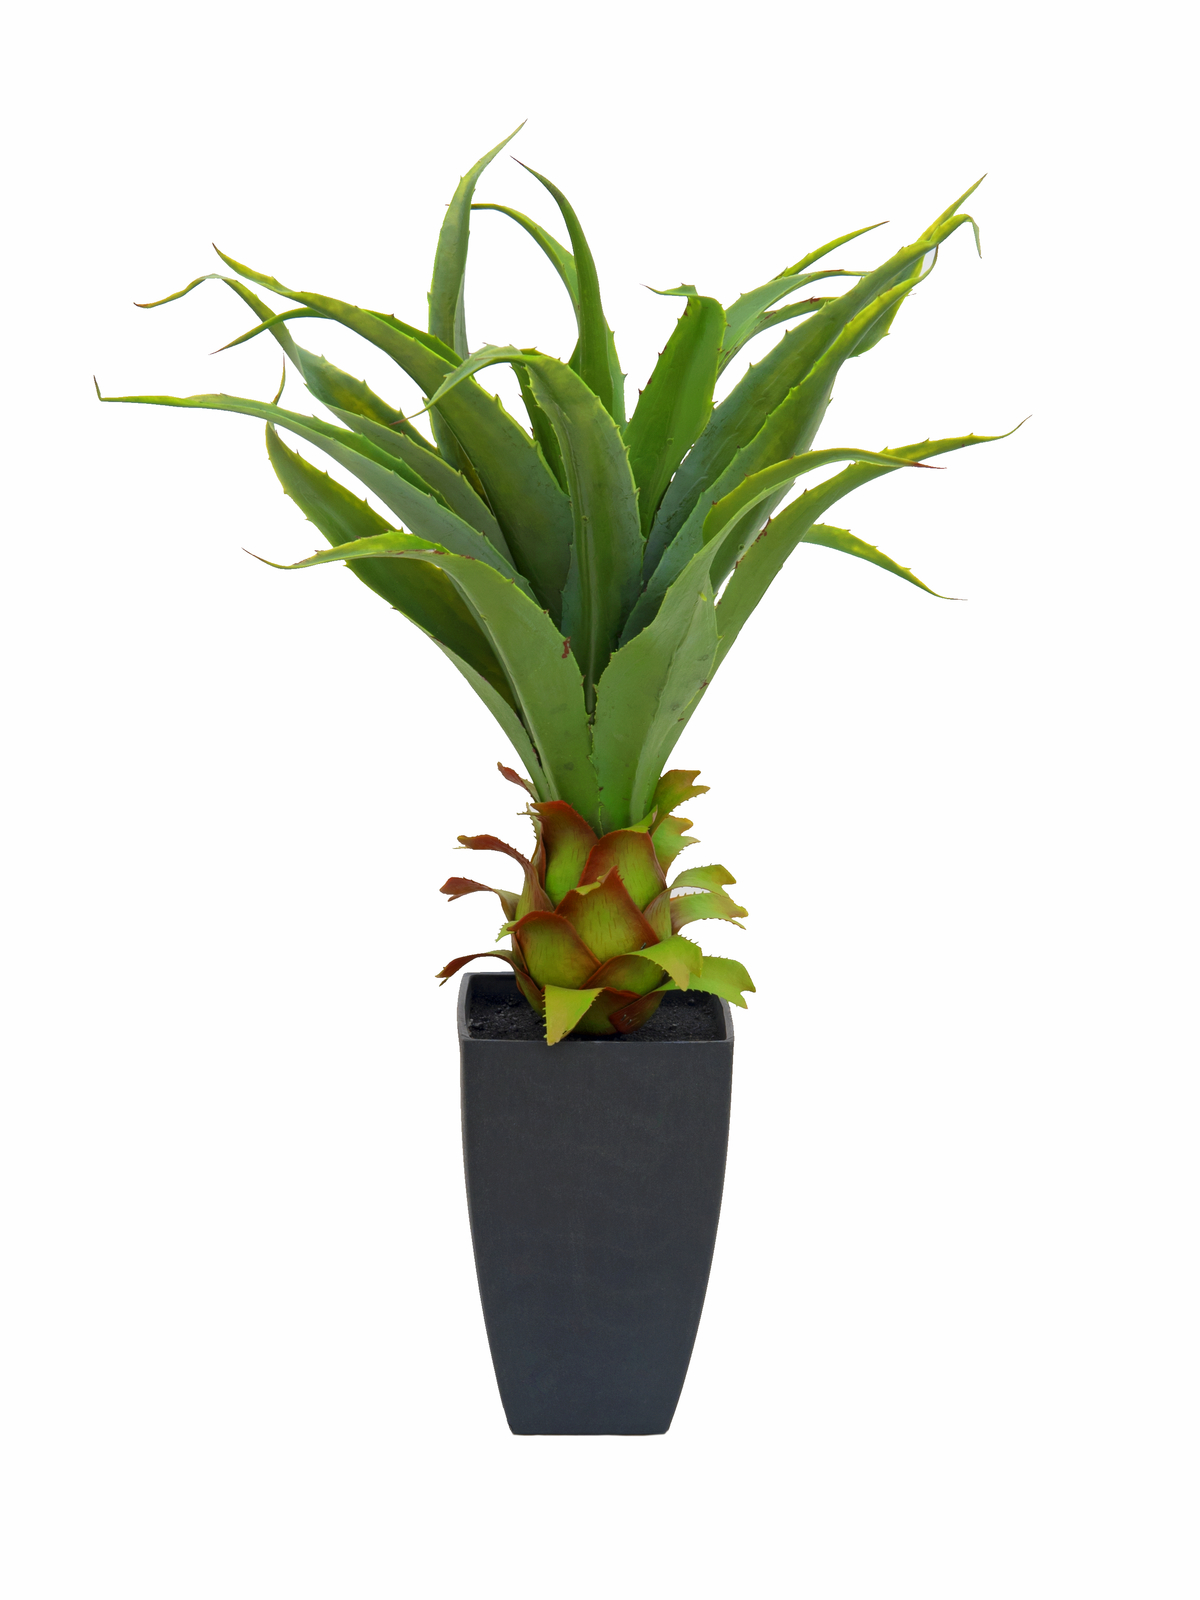 EUROPALMS pianta artificiale Agave  con vaso, 75cm